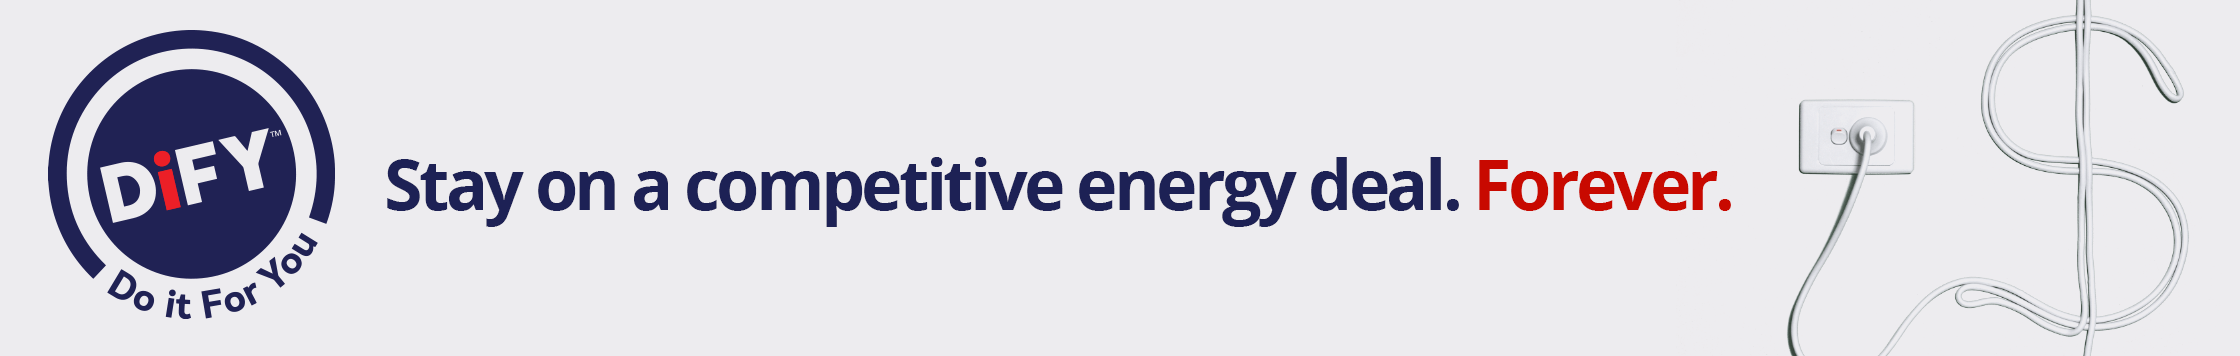 Dify - Do It For Your - Stay on a competitive energy. Forever.